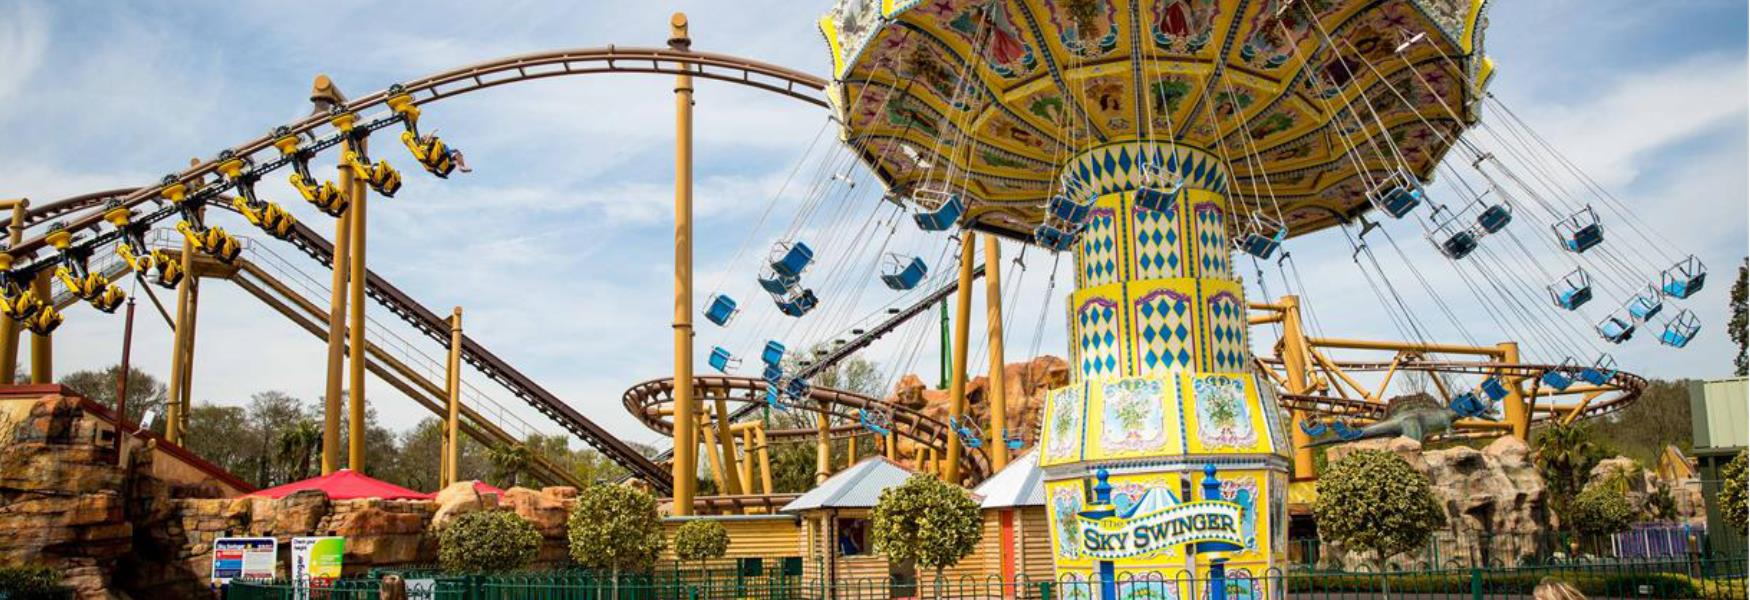 theme park rides at Paultons park in the new forest